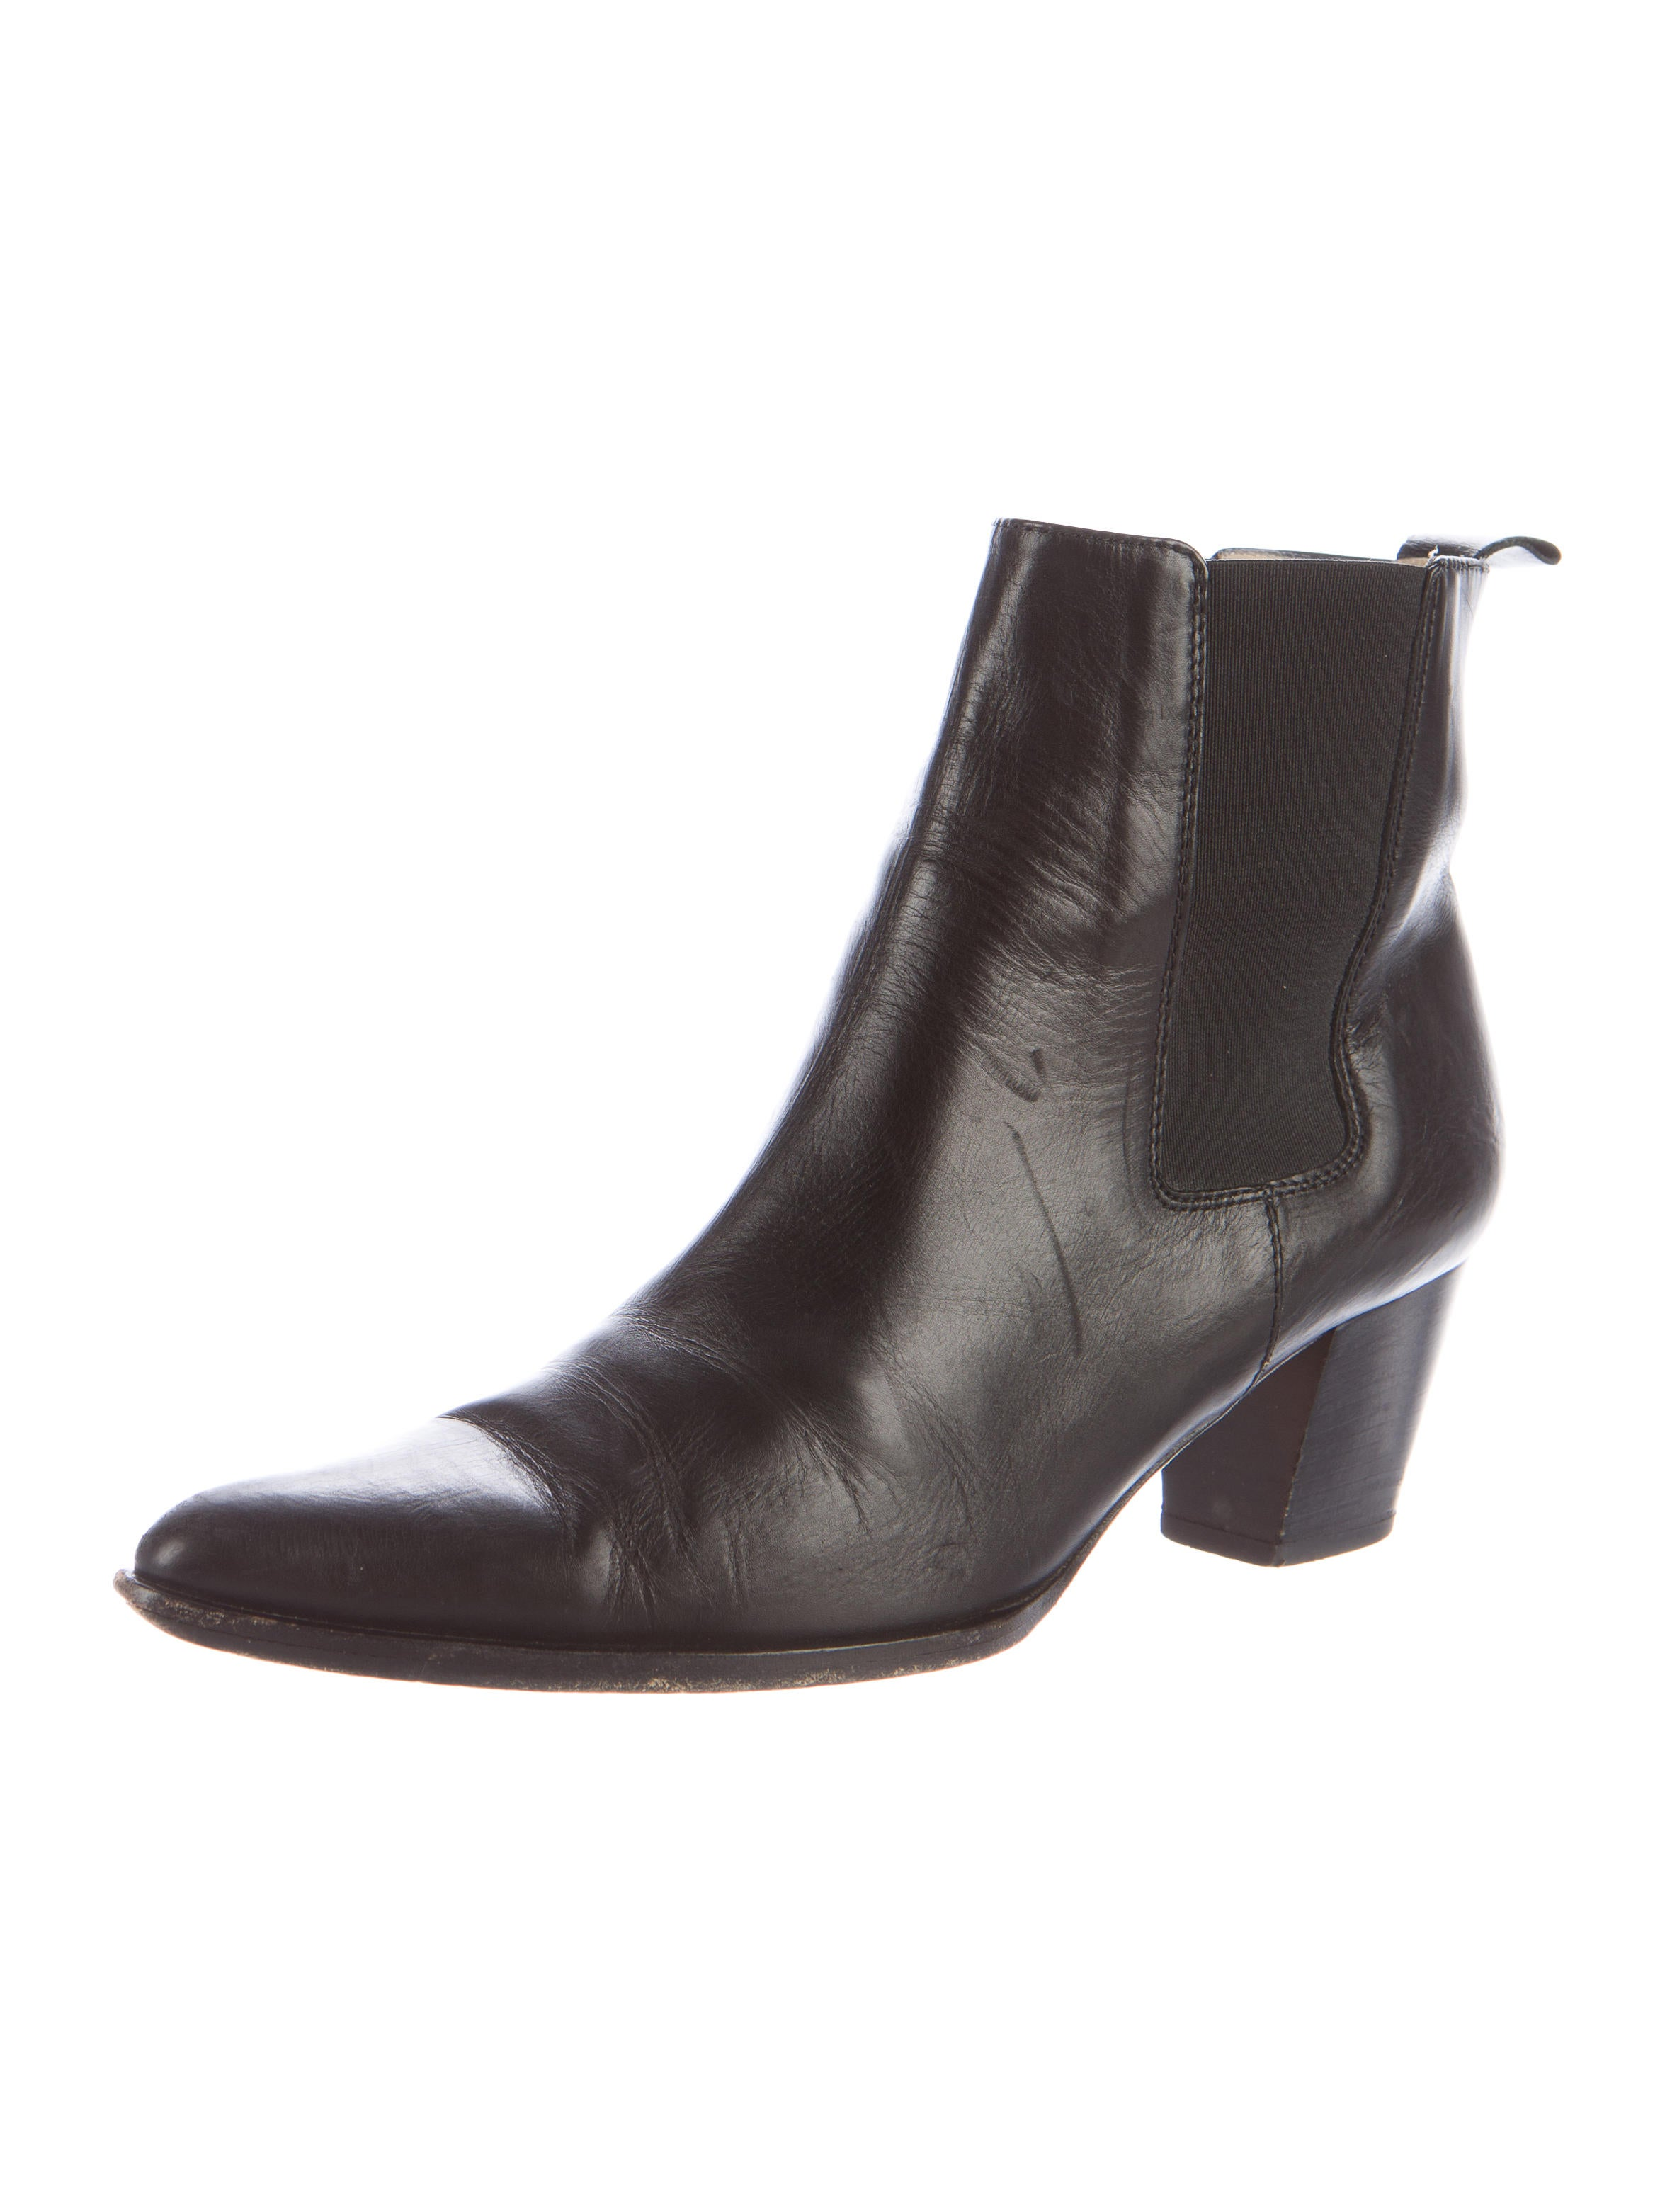 michael kors leather pointed toe boots shoes mic48266